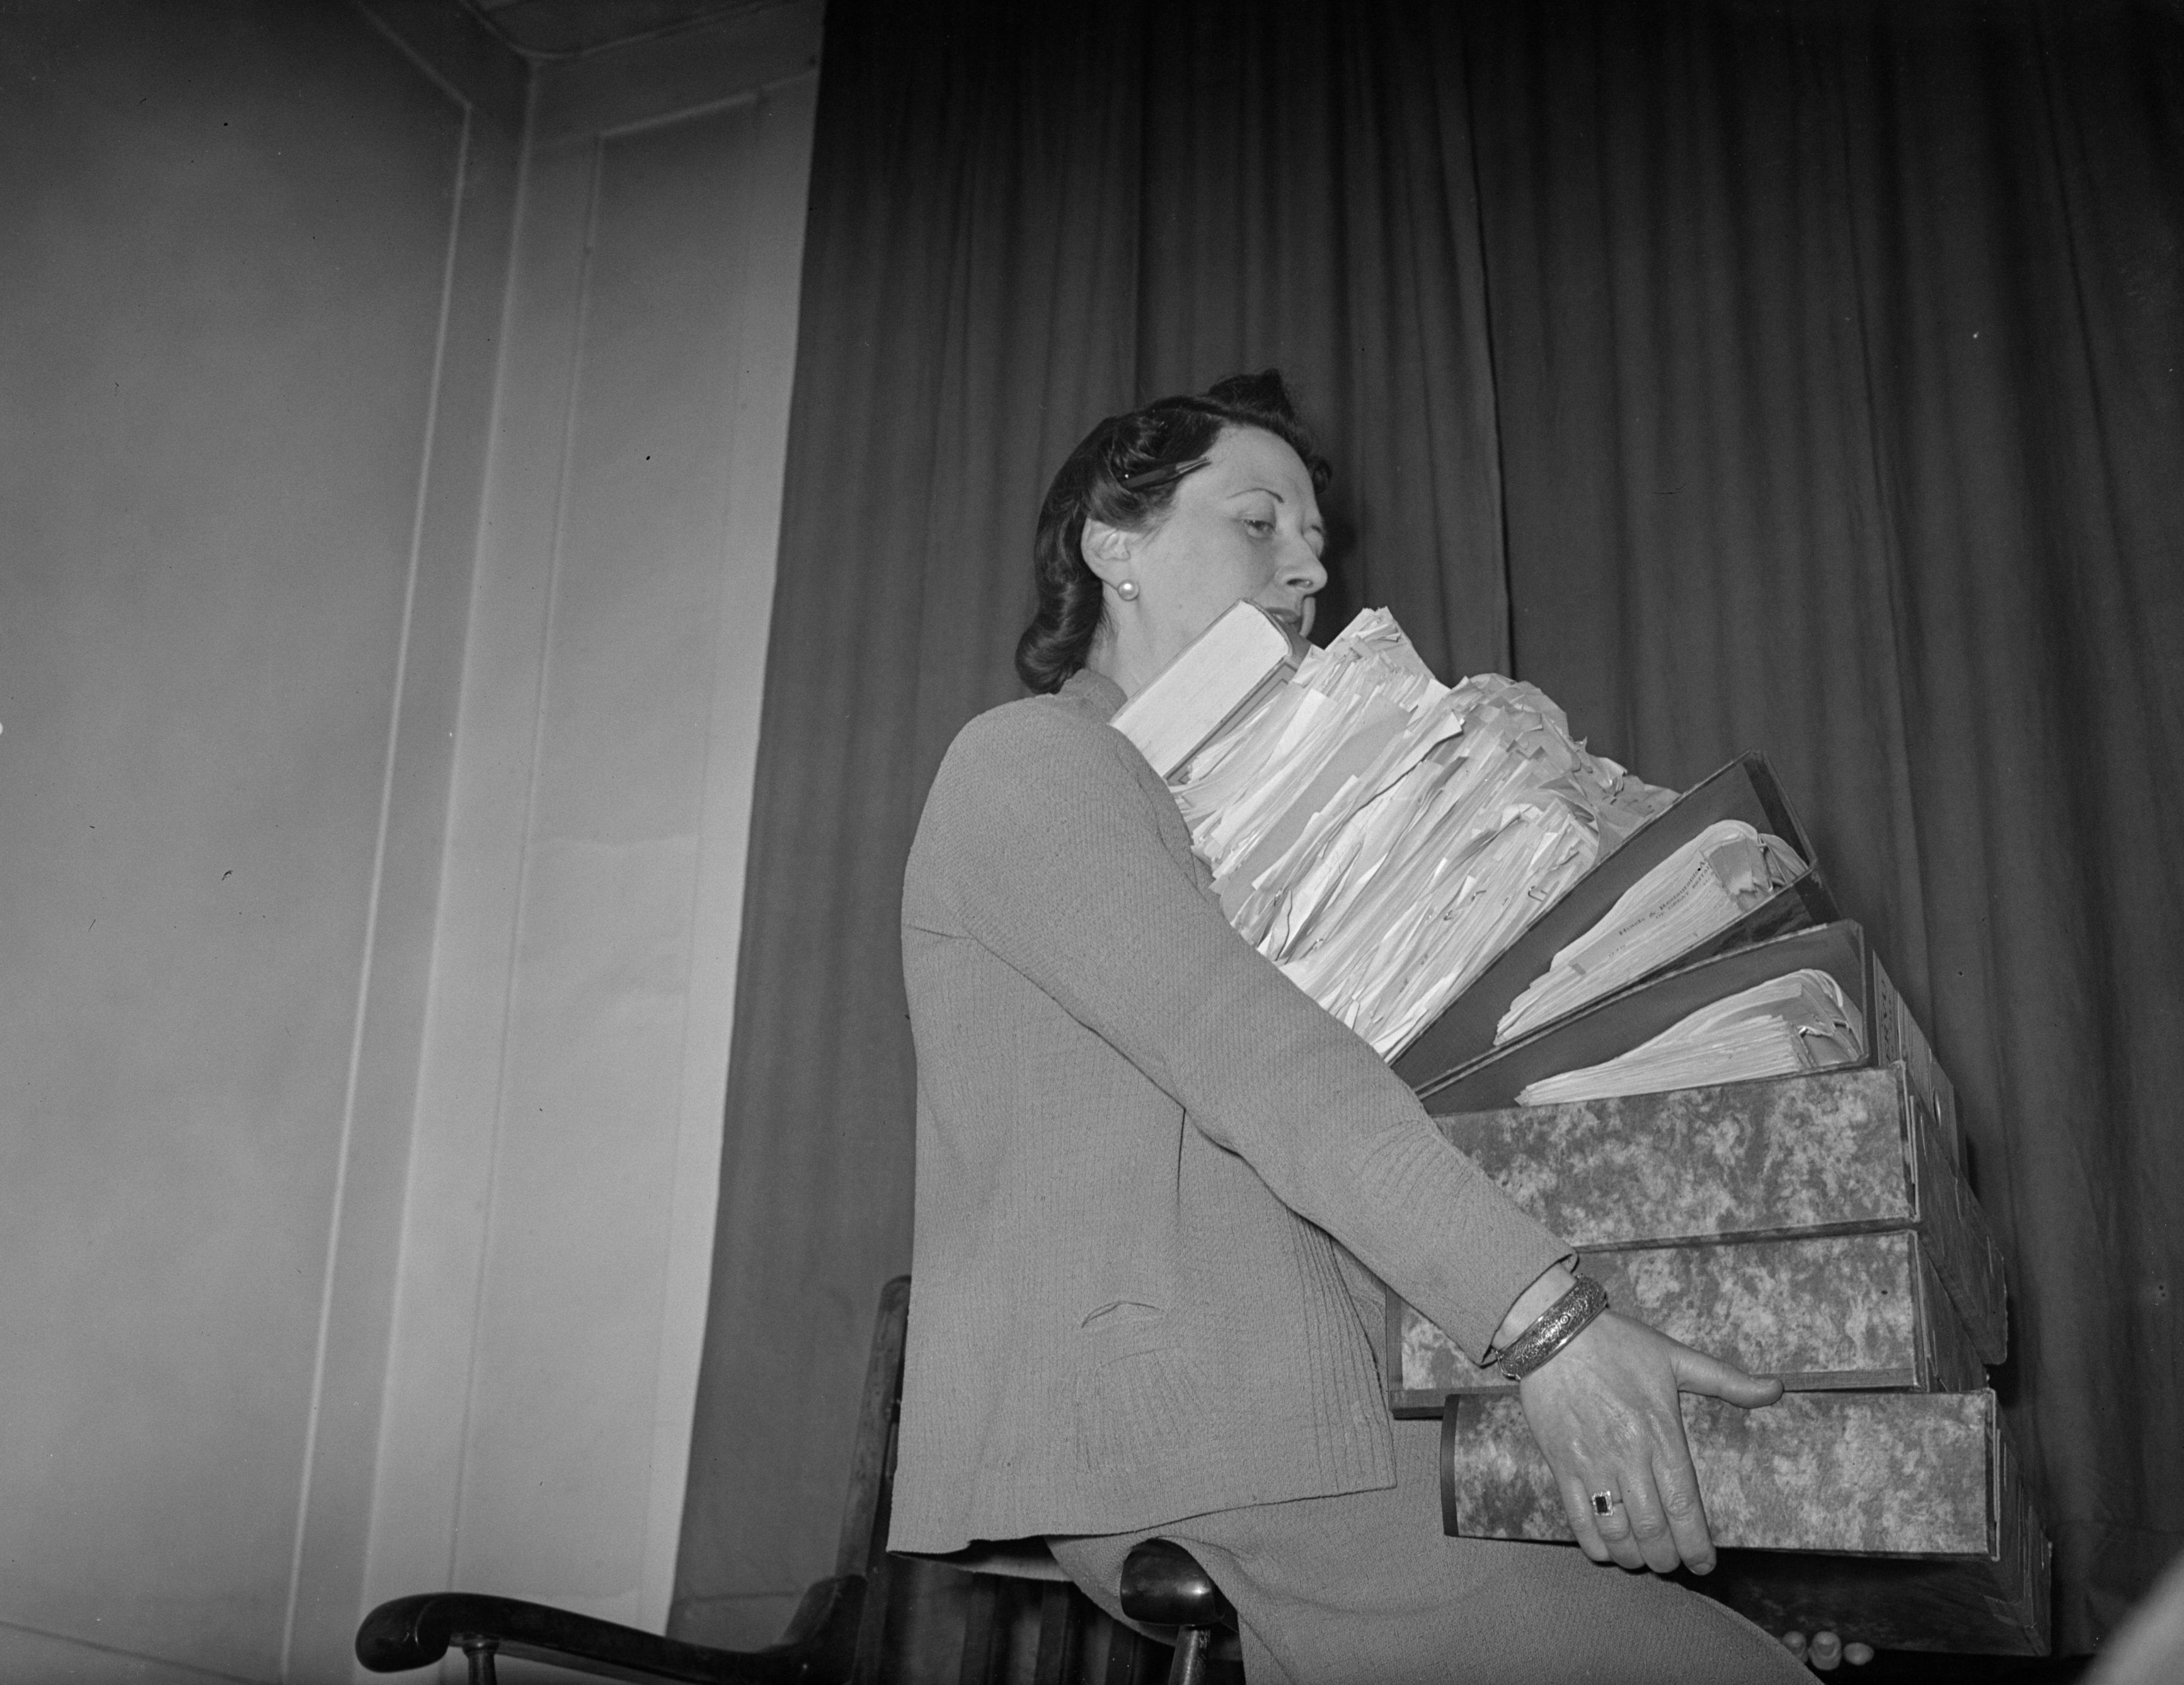 A woman holding a large pile of files and documents in preparation for filling out her tax return